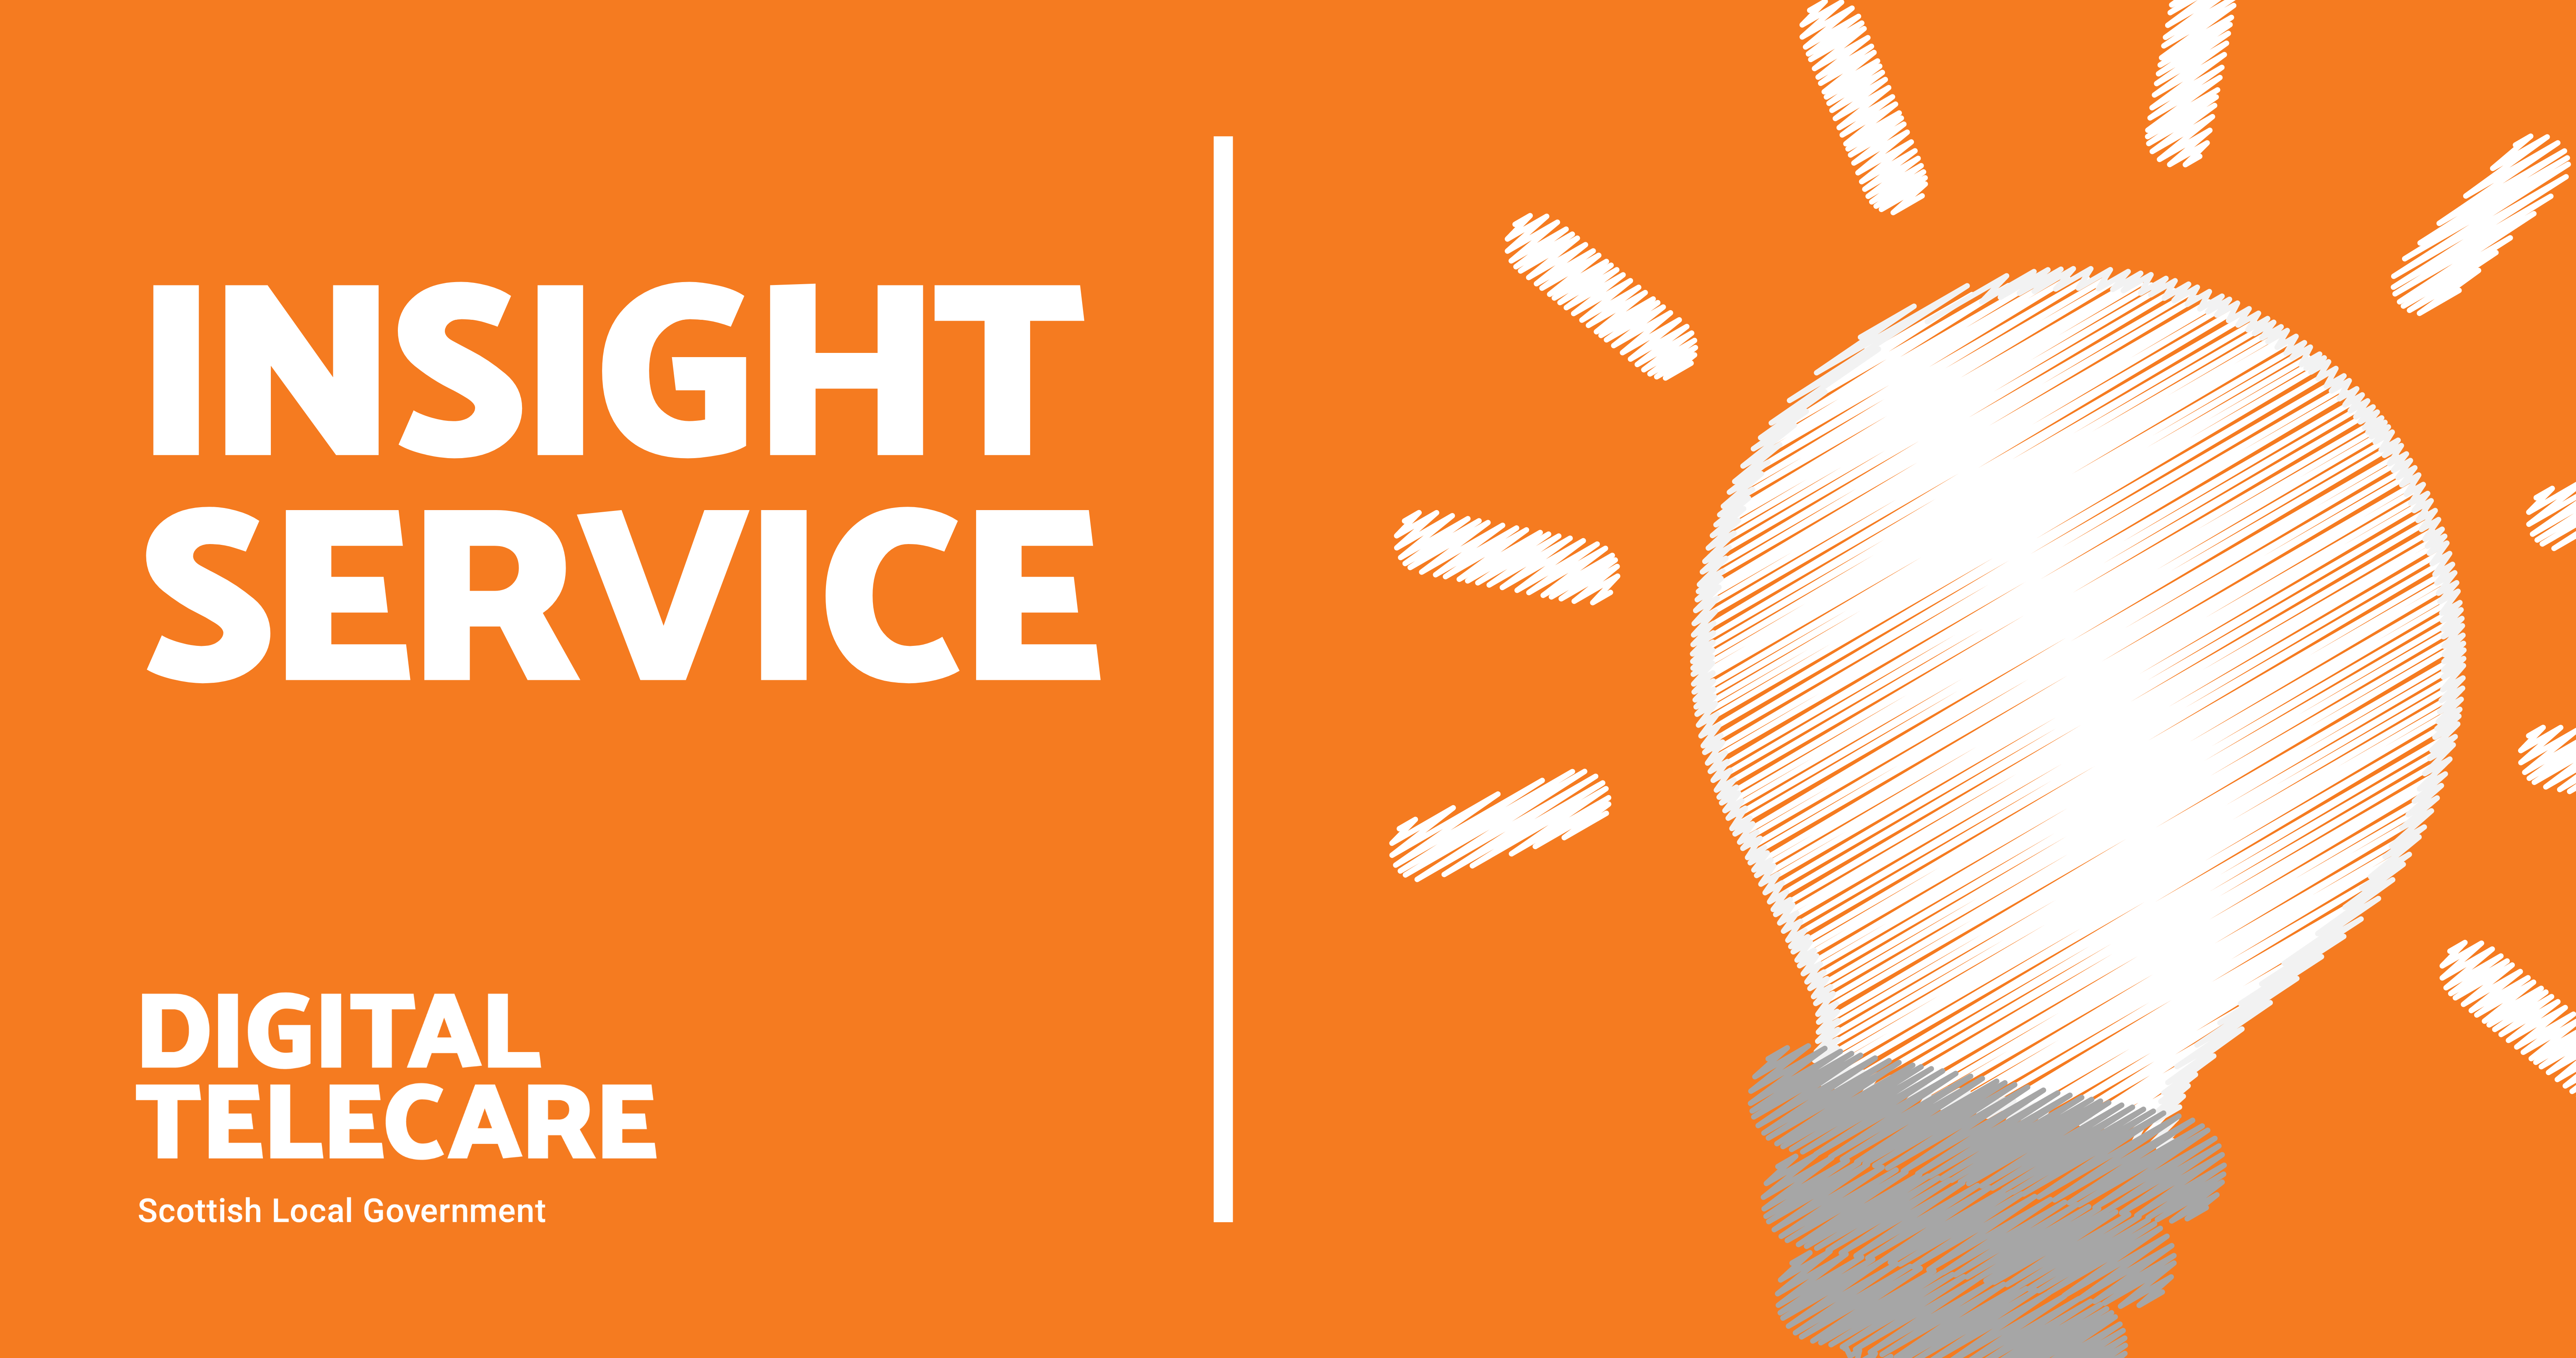 INSIGHT SERVICE JUNE 2020: TELEPHONY SWITCHOVER